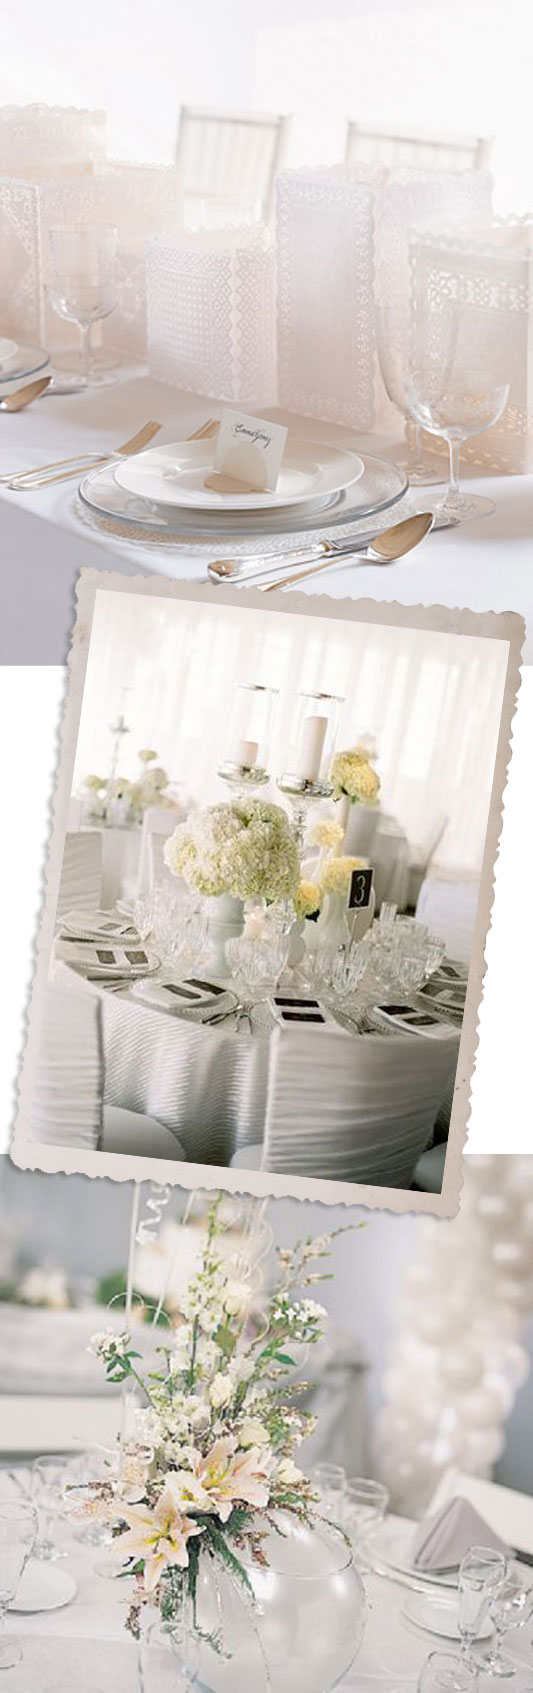 white deco ideas 1